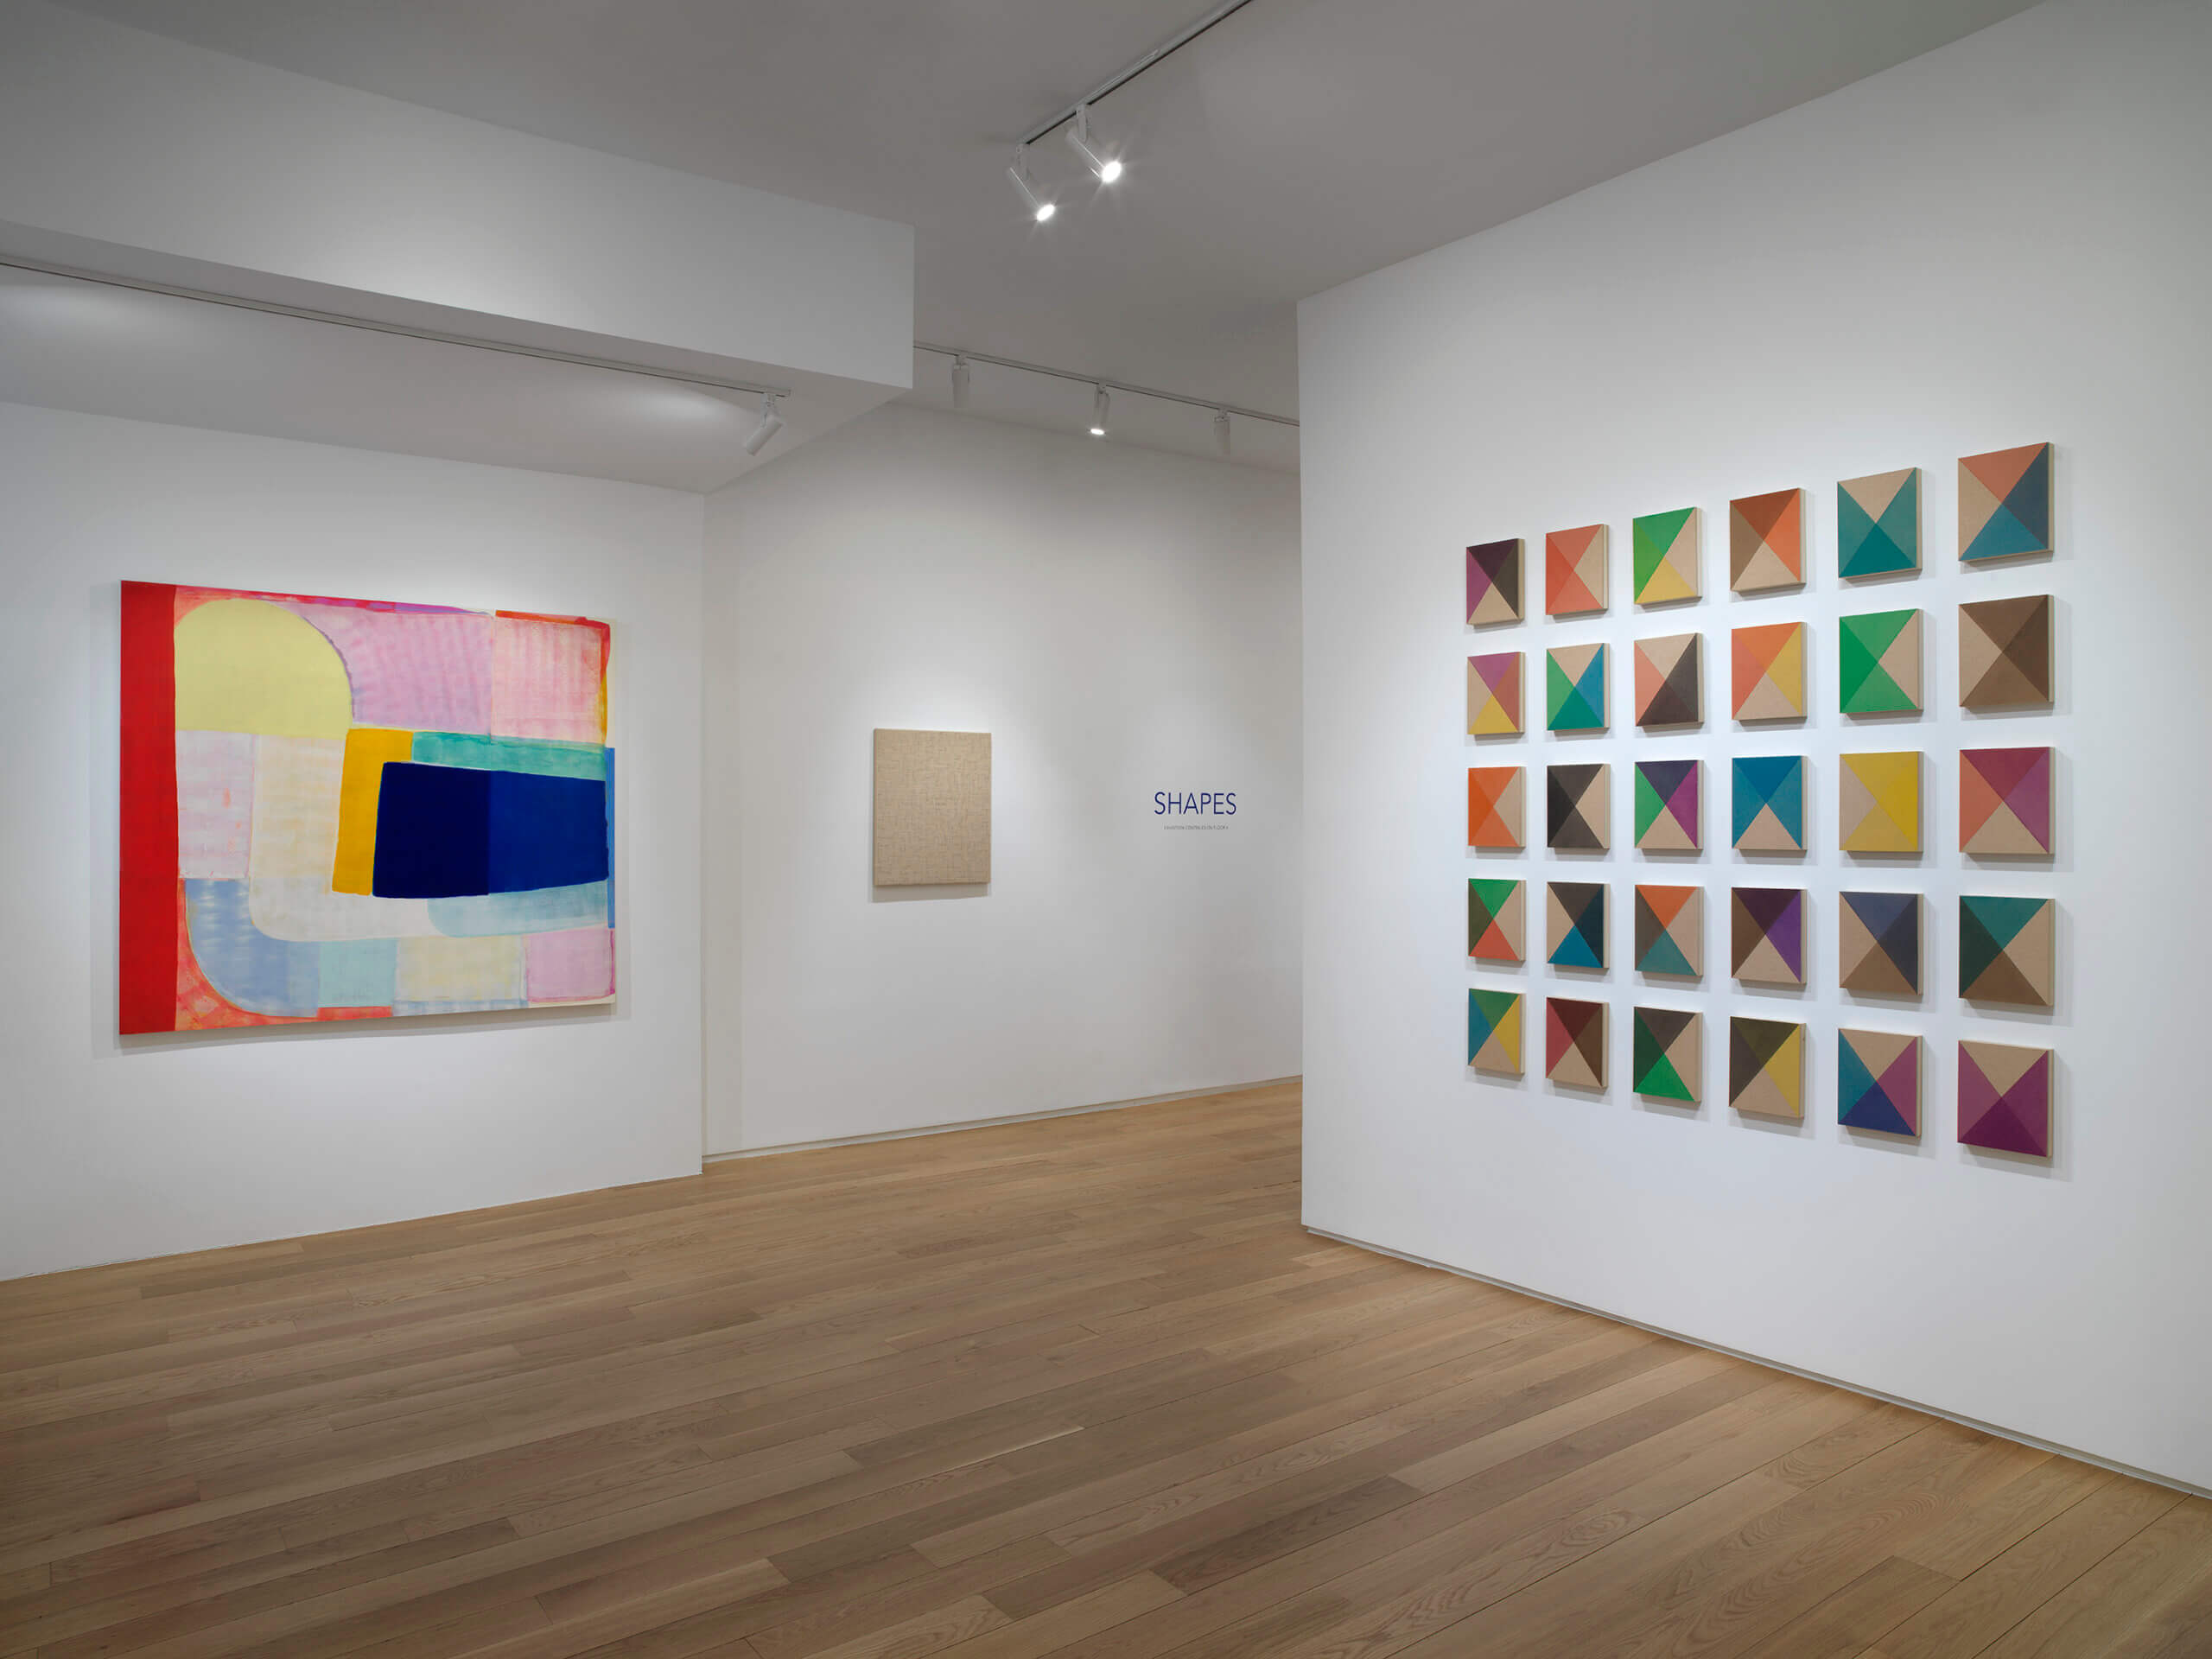 Shapes (April 21-May 27, 2021) at Alexander Berggruen, New York